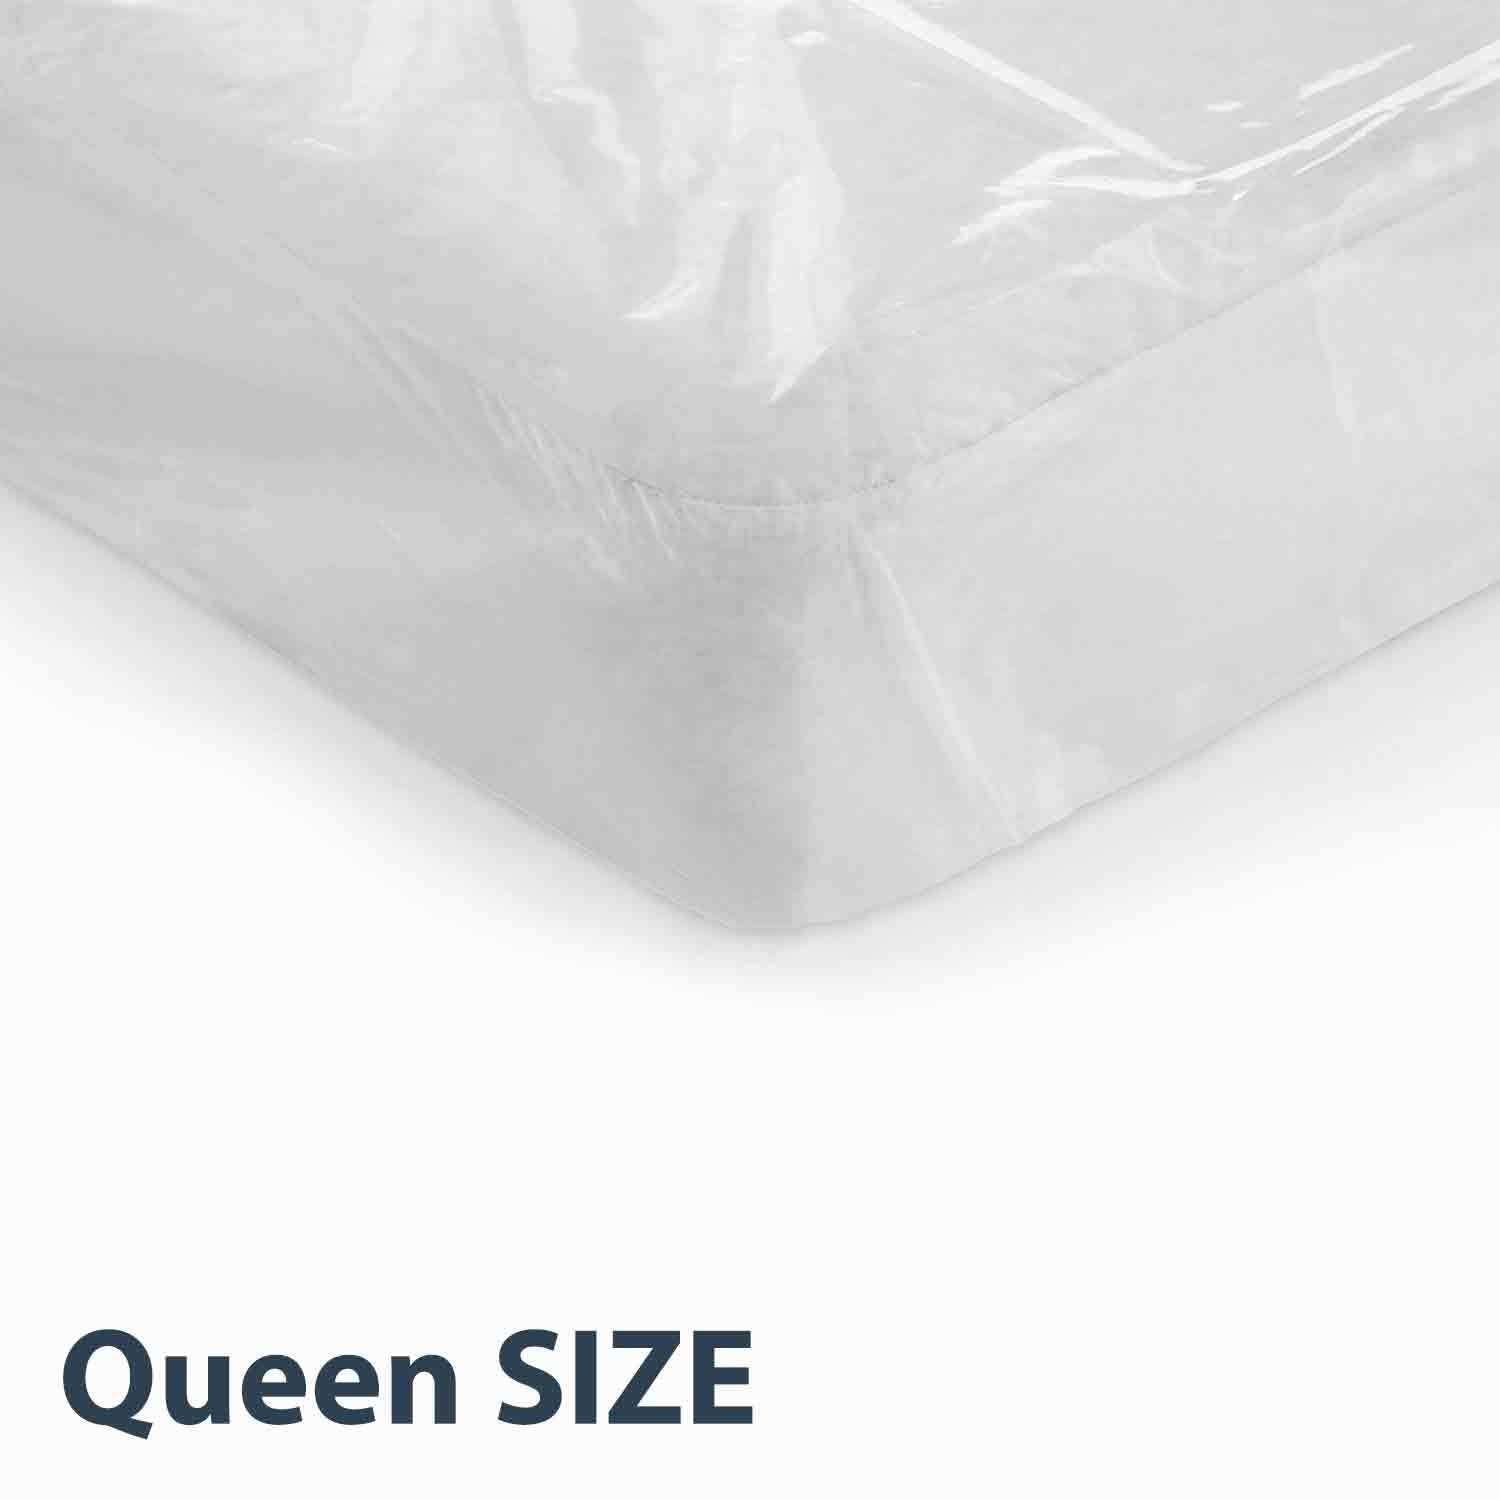 Queen Size Mattress Bag Cover For Protection During Moving QMBC-1